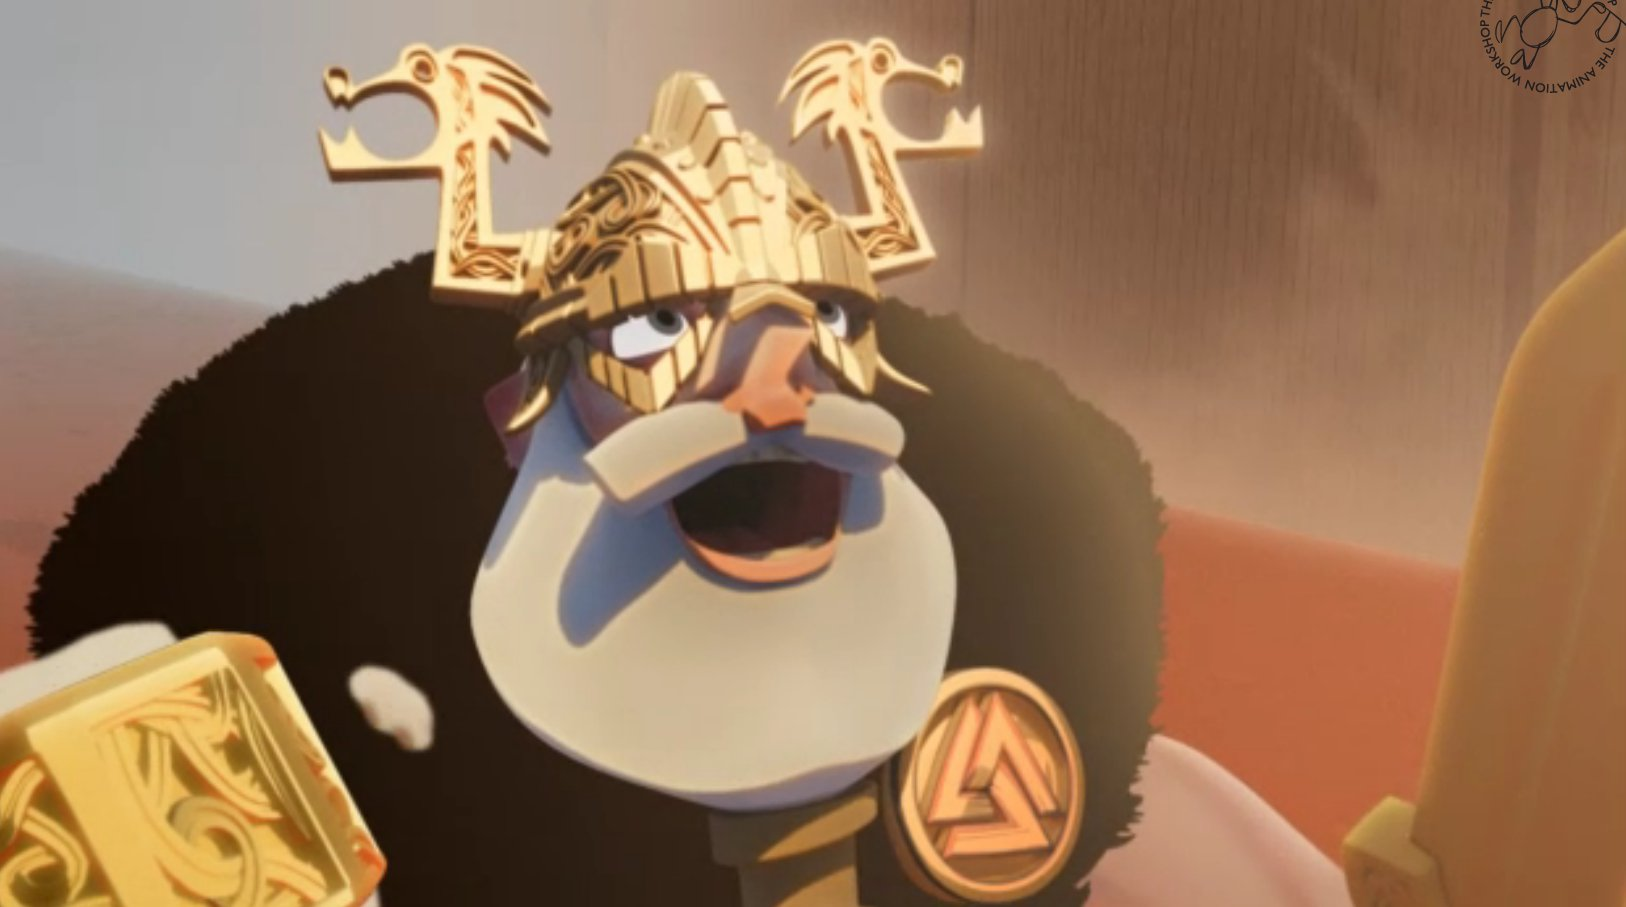 The Saga of Biôrn, the Viking. Wonderful animated short